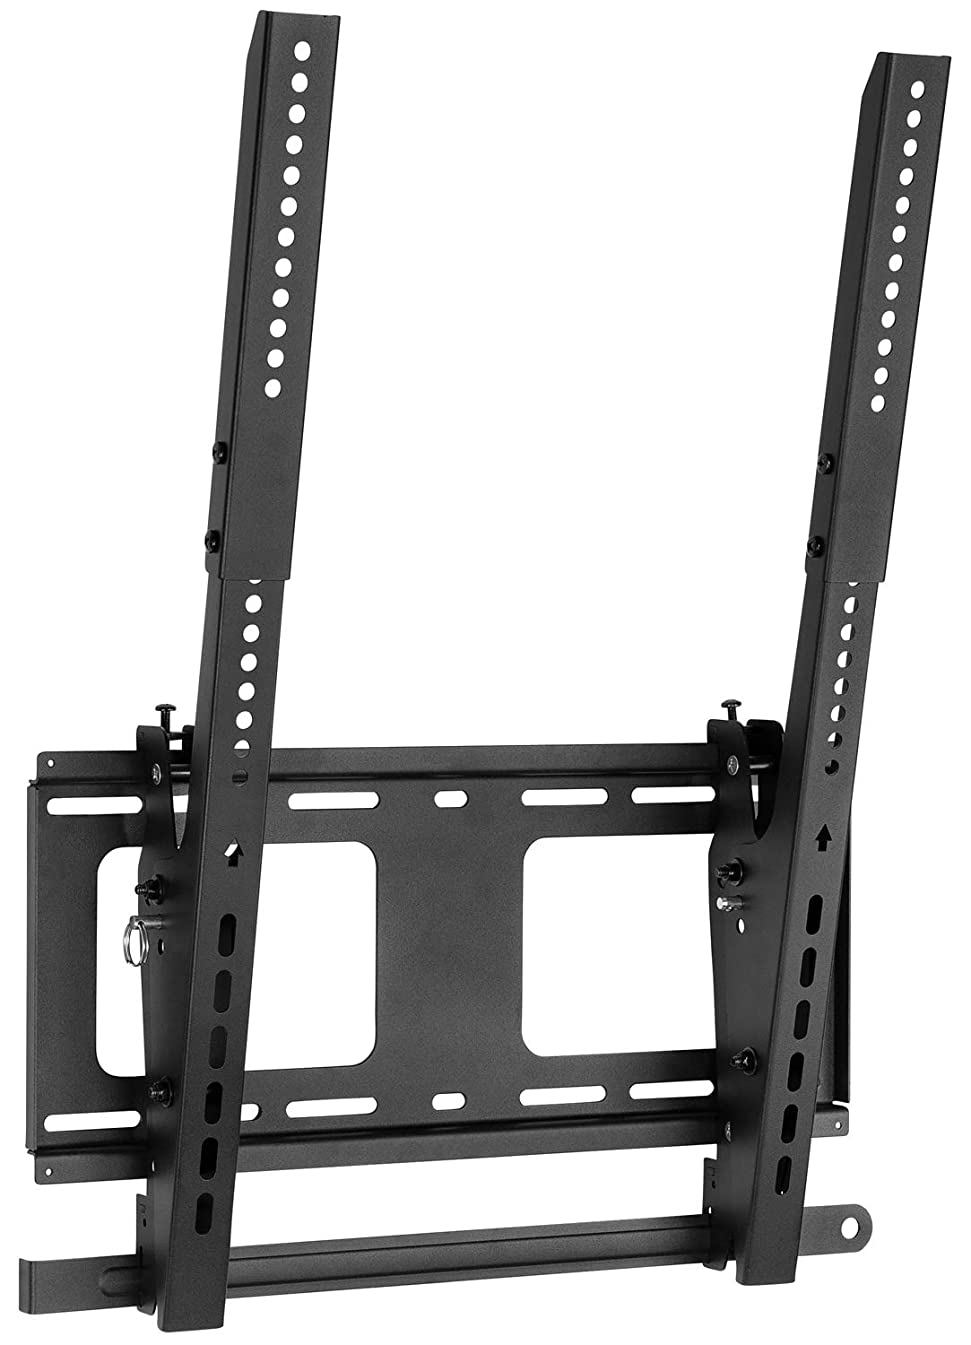 Mount-It! Vertical Portrait TV Wall Mount, Vertical-Orientation Menu Wall Board Mount, Tilting, Anti-Theft and Lockable, Fits Most 40